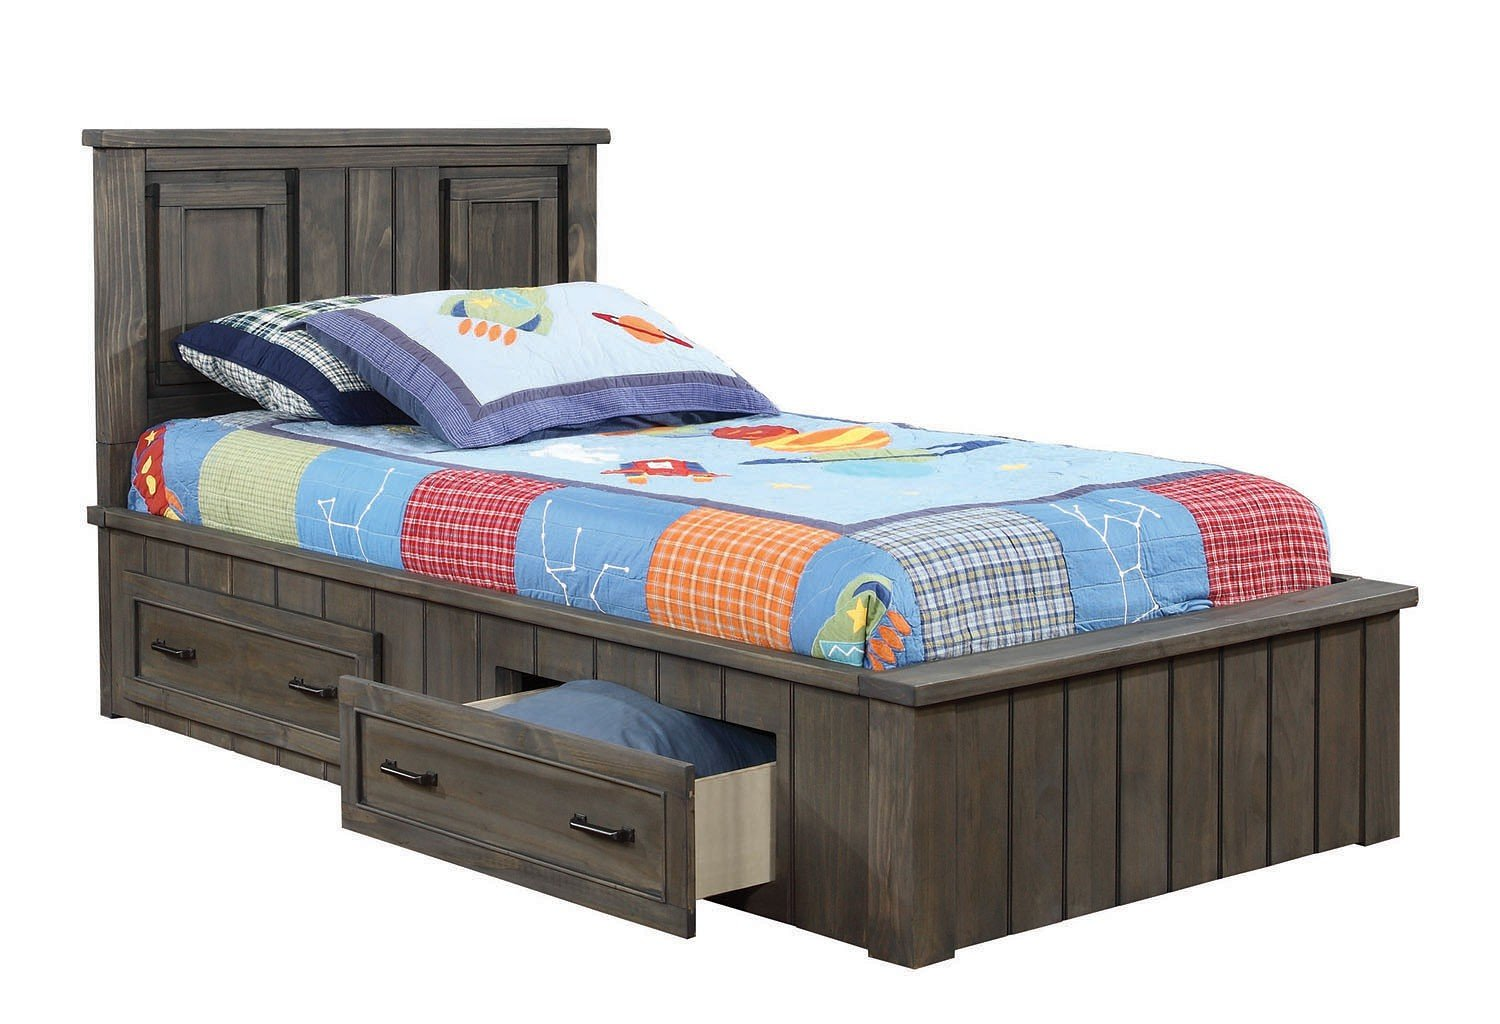 Napoleon youth storage bedroom set kids and youth furniture kids for Youth storage bedroom furniture